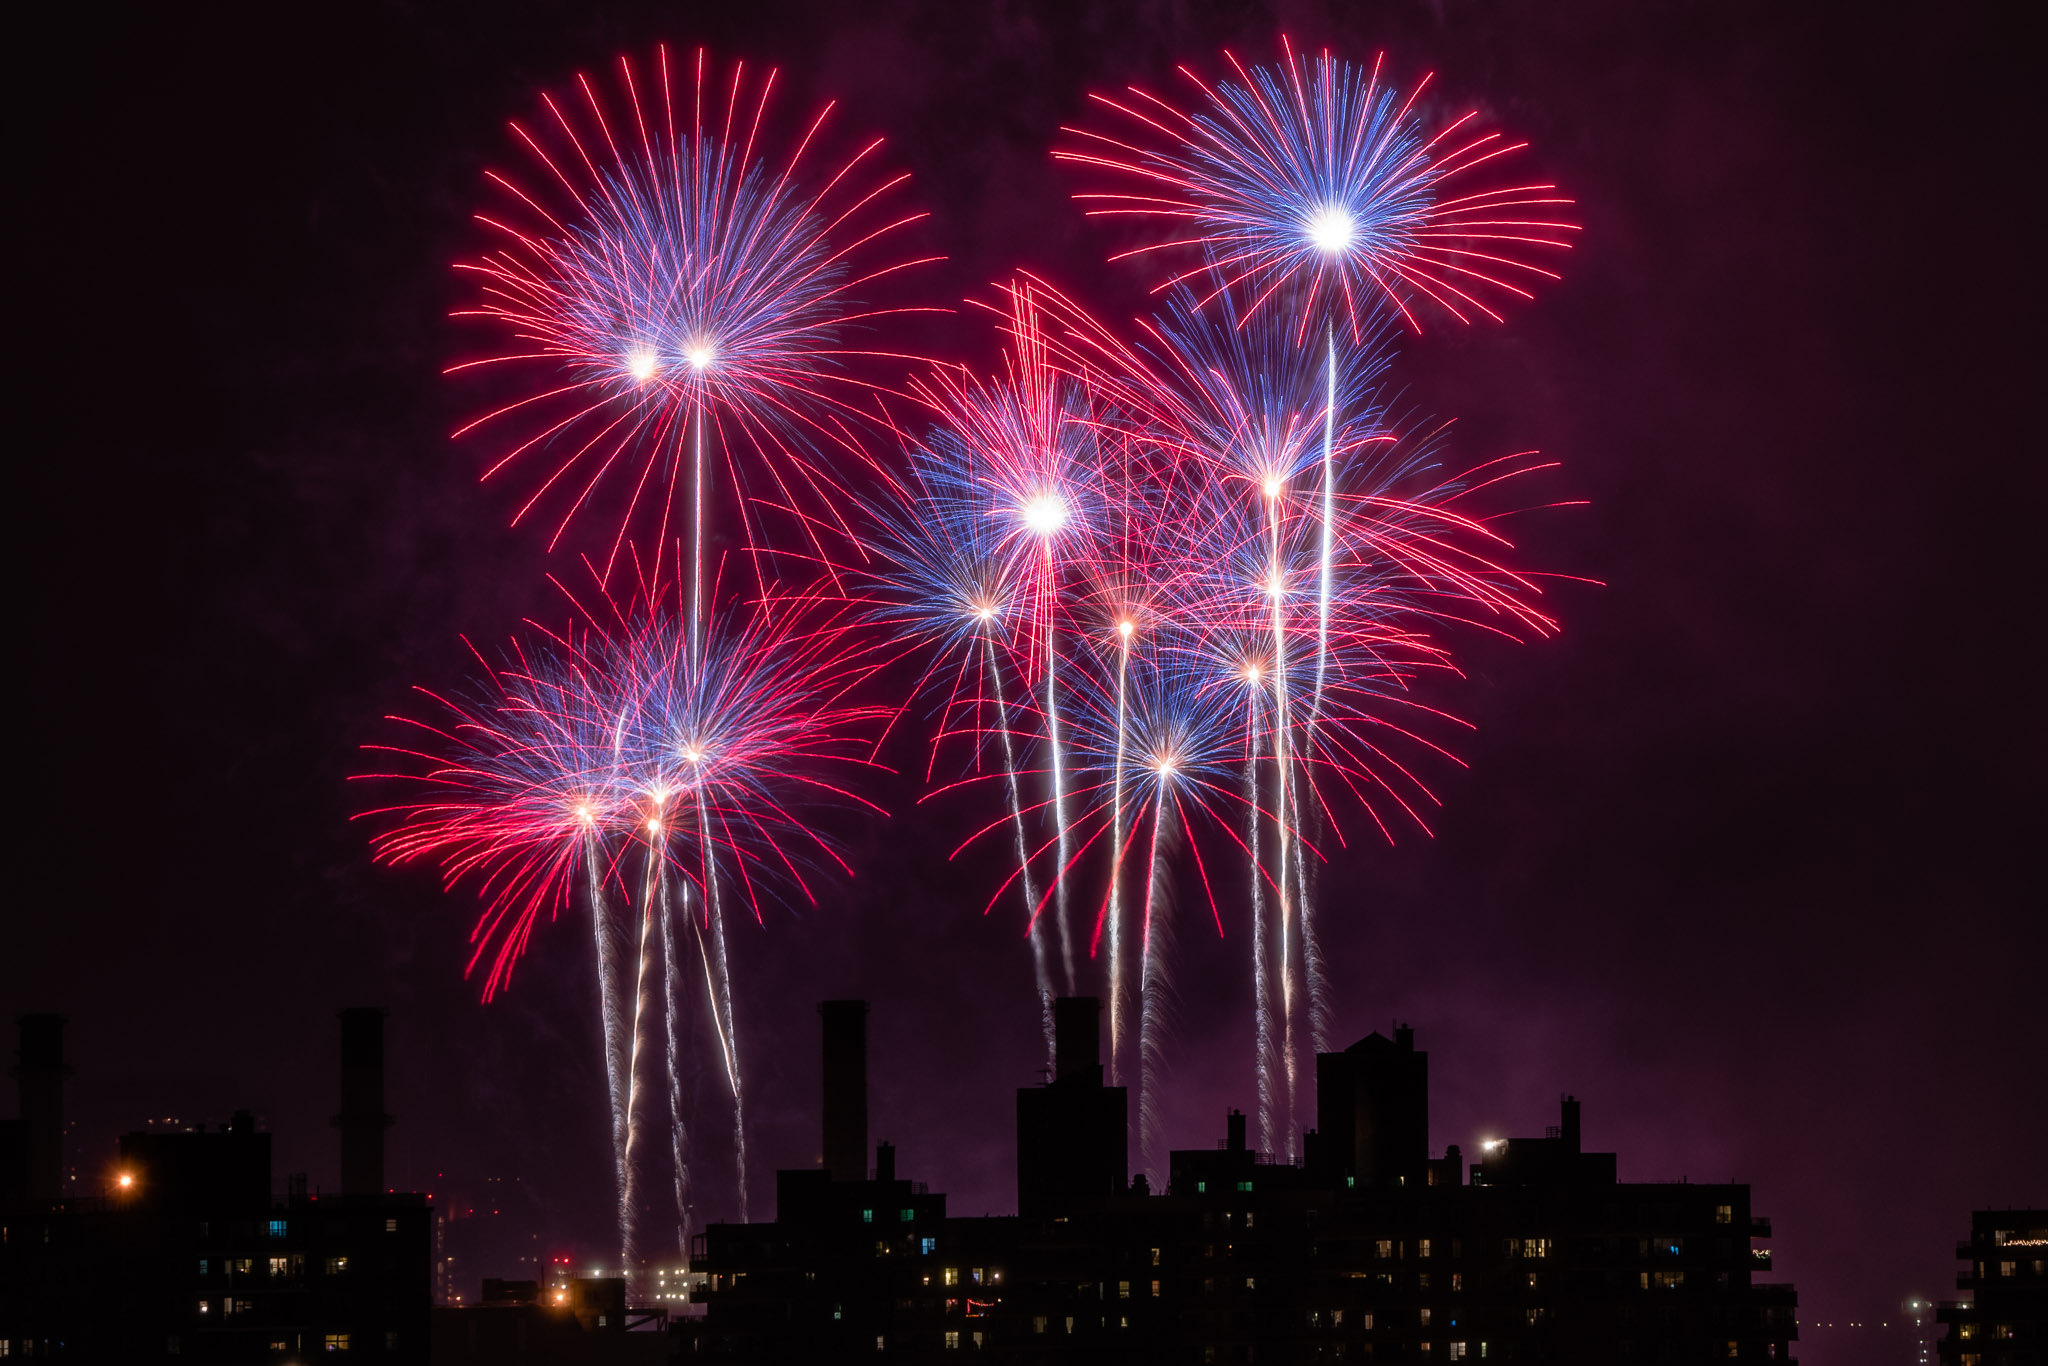 Fireworks over NYC, July 4th